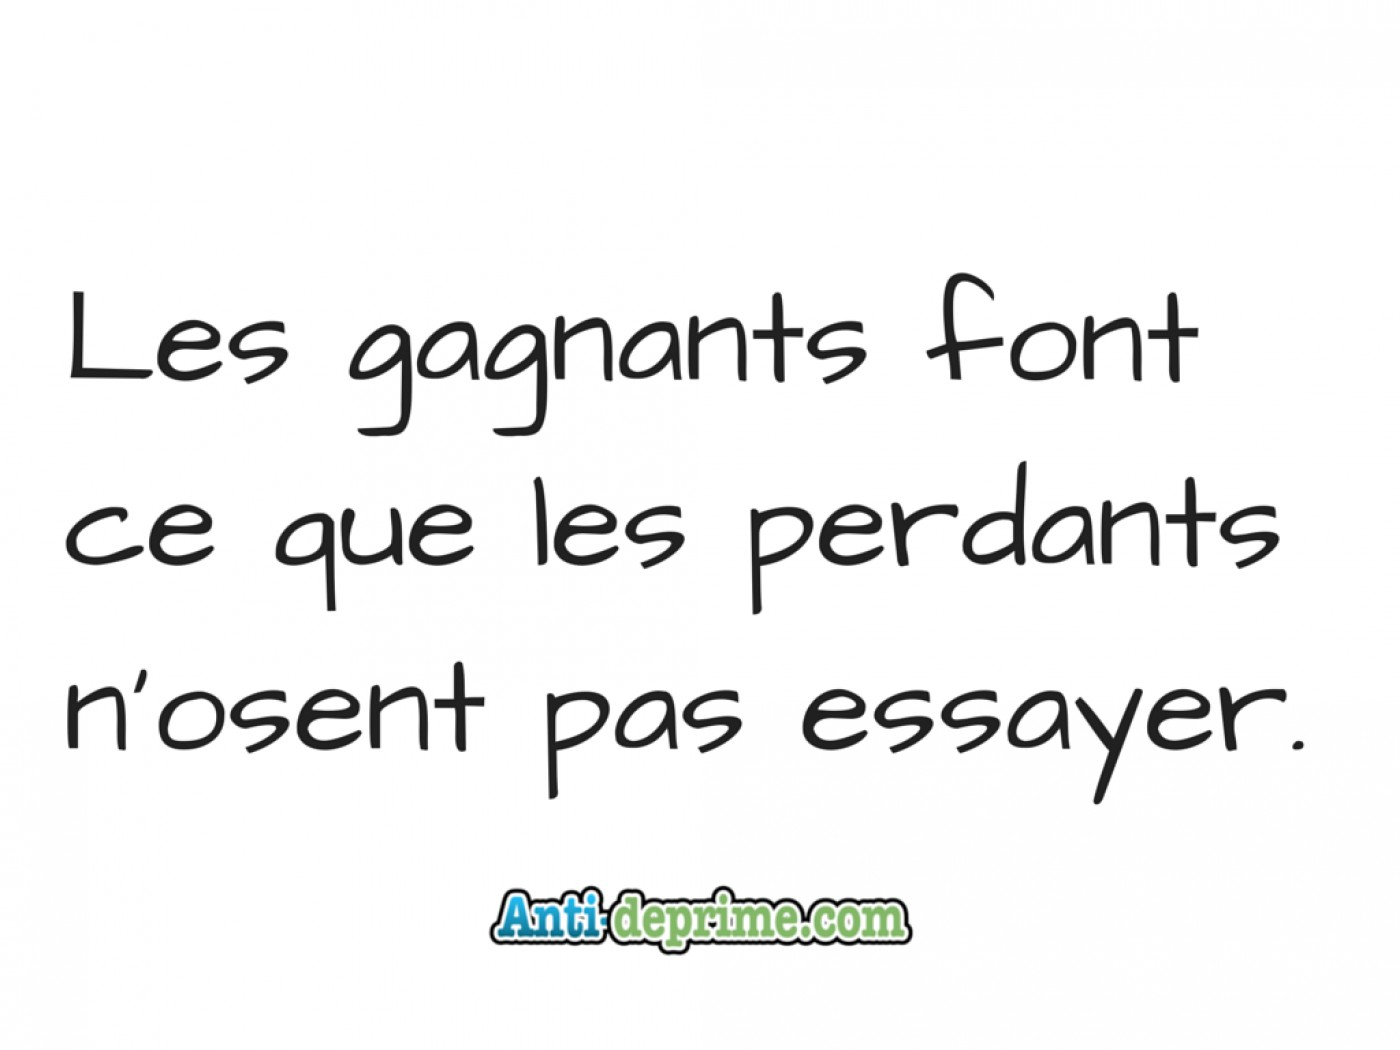 004 Les Gagnants Font Que Perdants Essay Example Impressive Essayer French Verb Conjugation Definition Synonymes In English 1400